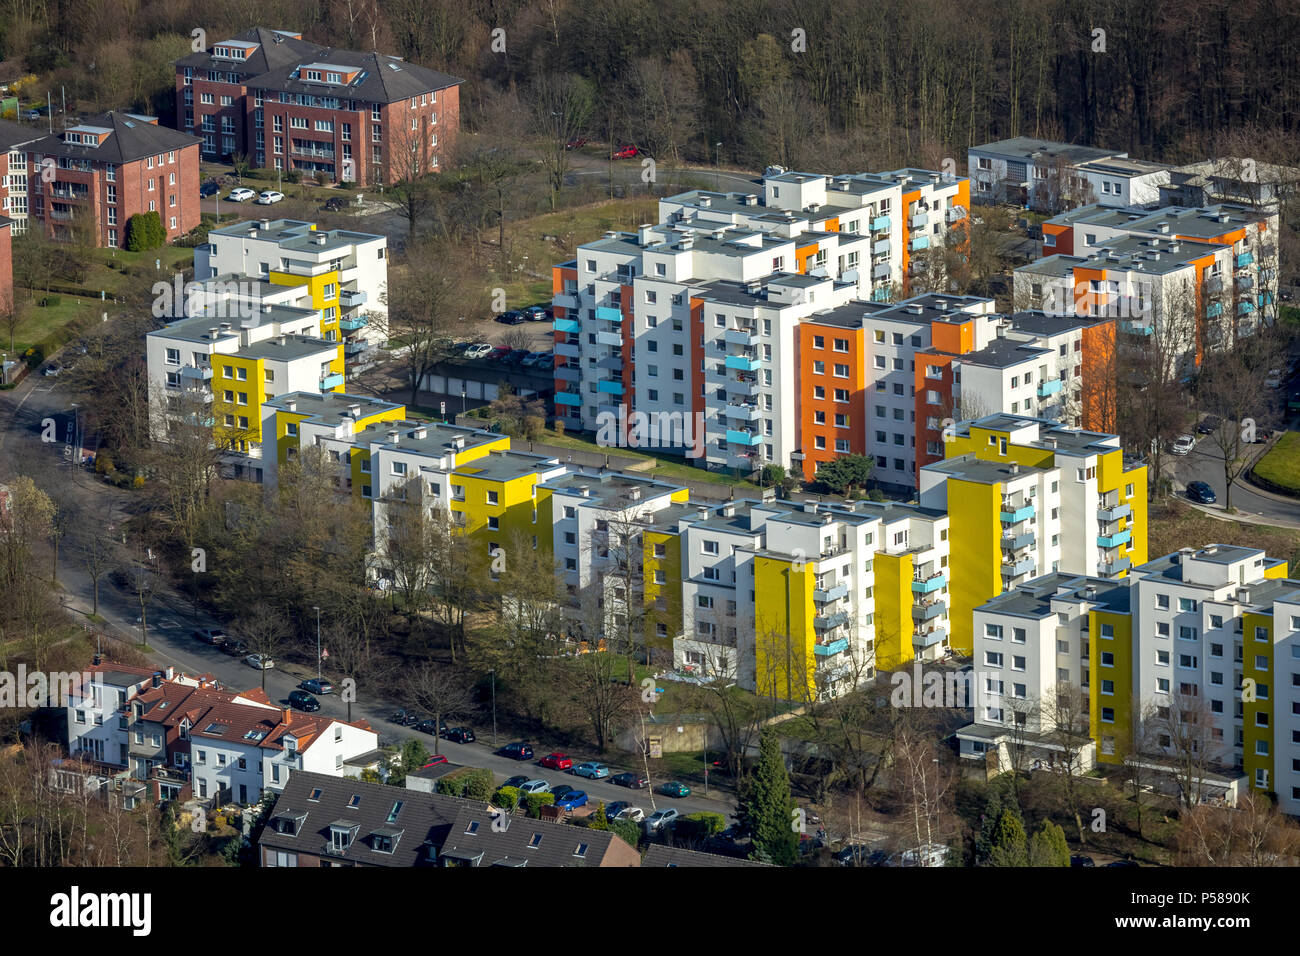 High-rise settlement Bochum-Querenburg with colorful skyscrapers in Bochum in North Rhine-Westphalia. Bochum, Ruhr area, North Rhine-Westphalia, Germa - Stock Image